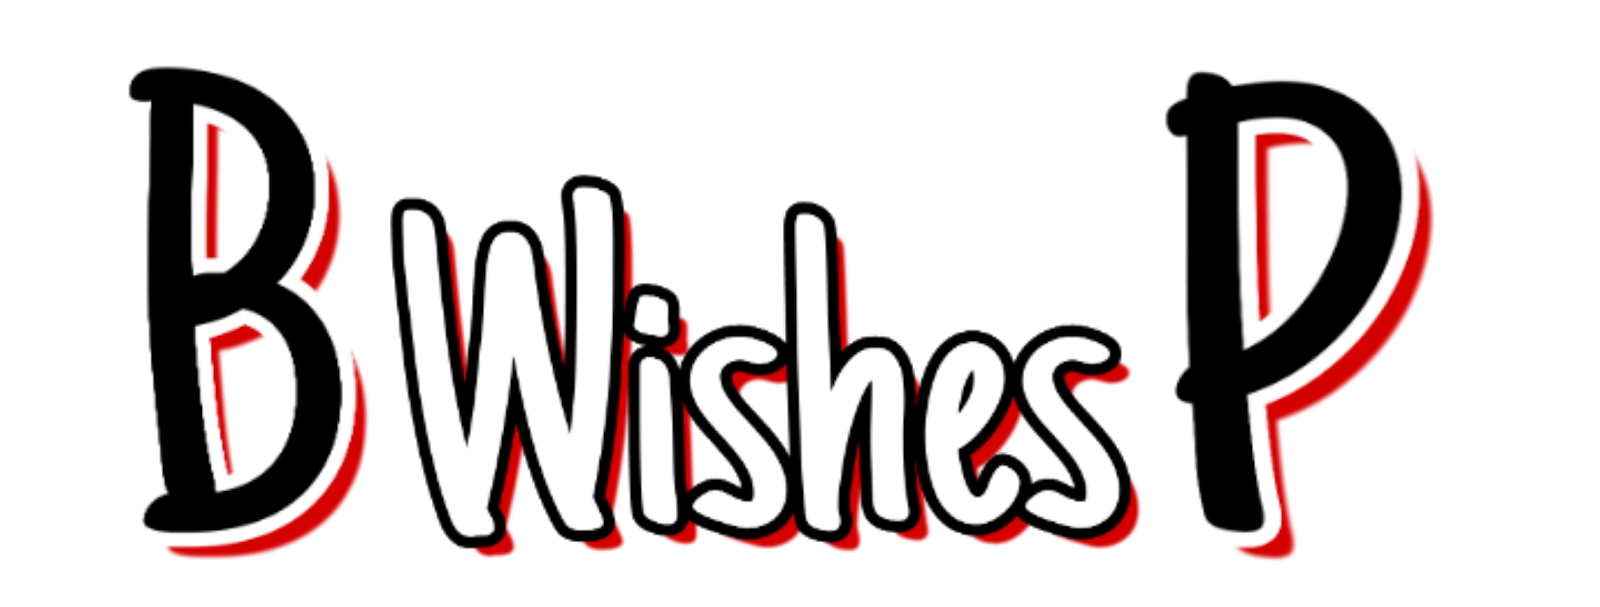 Best wishes pictures | Largest collection of Wishing images